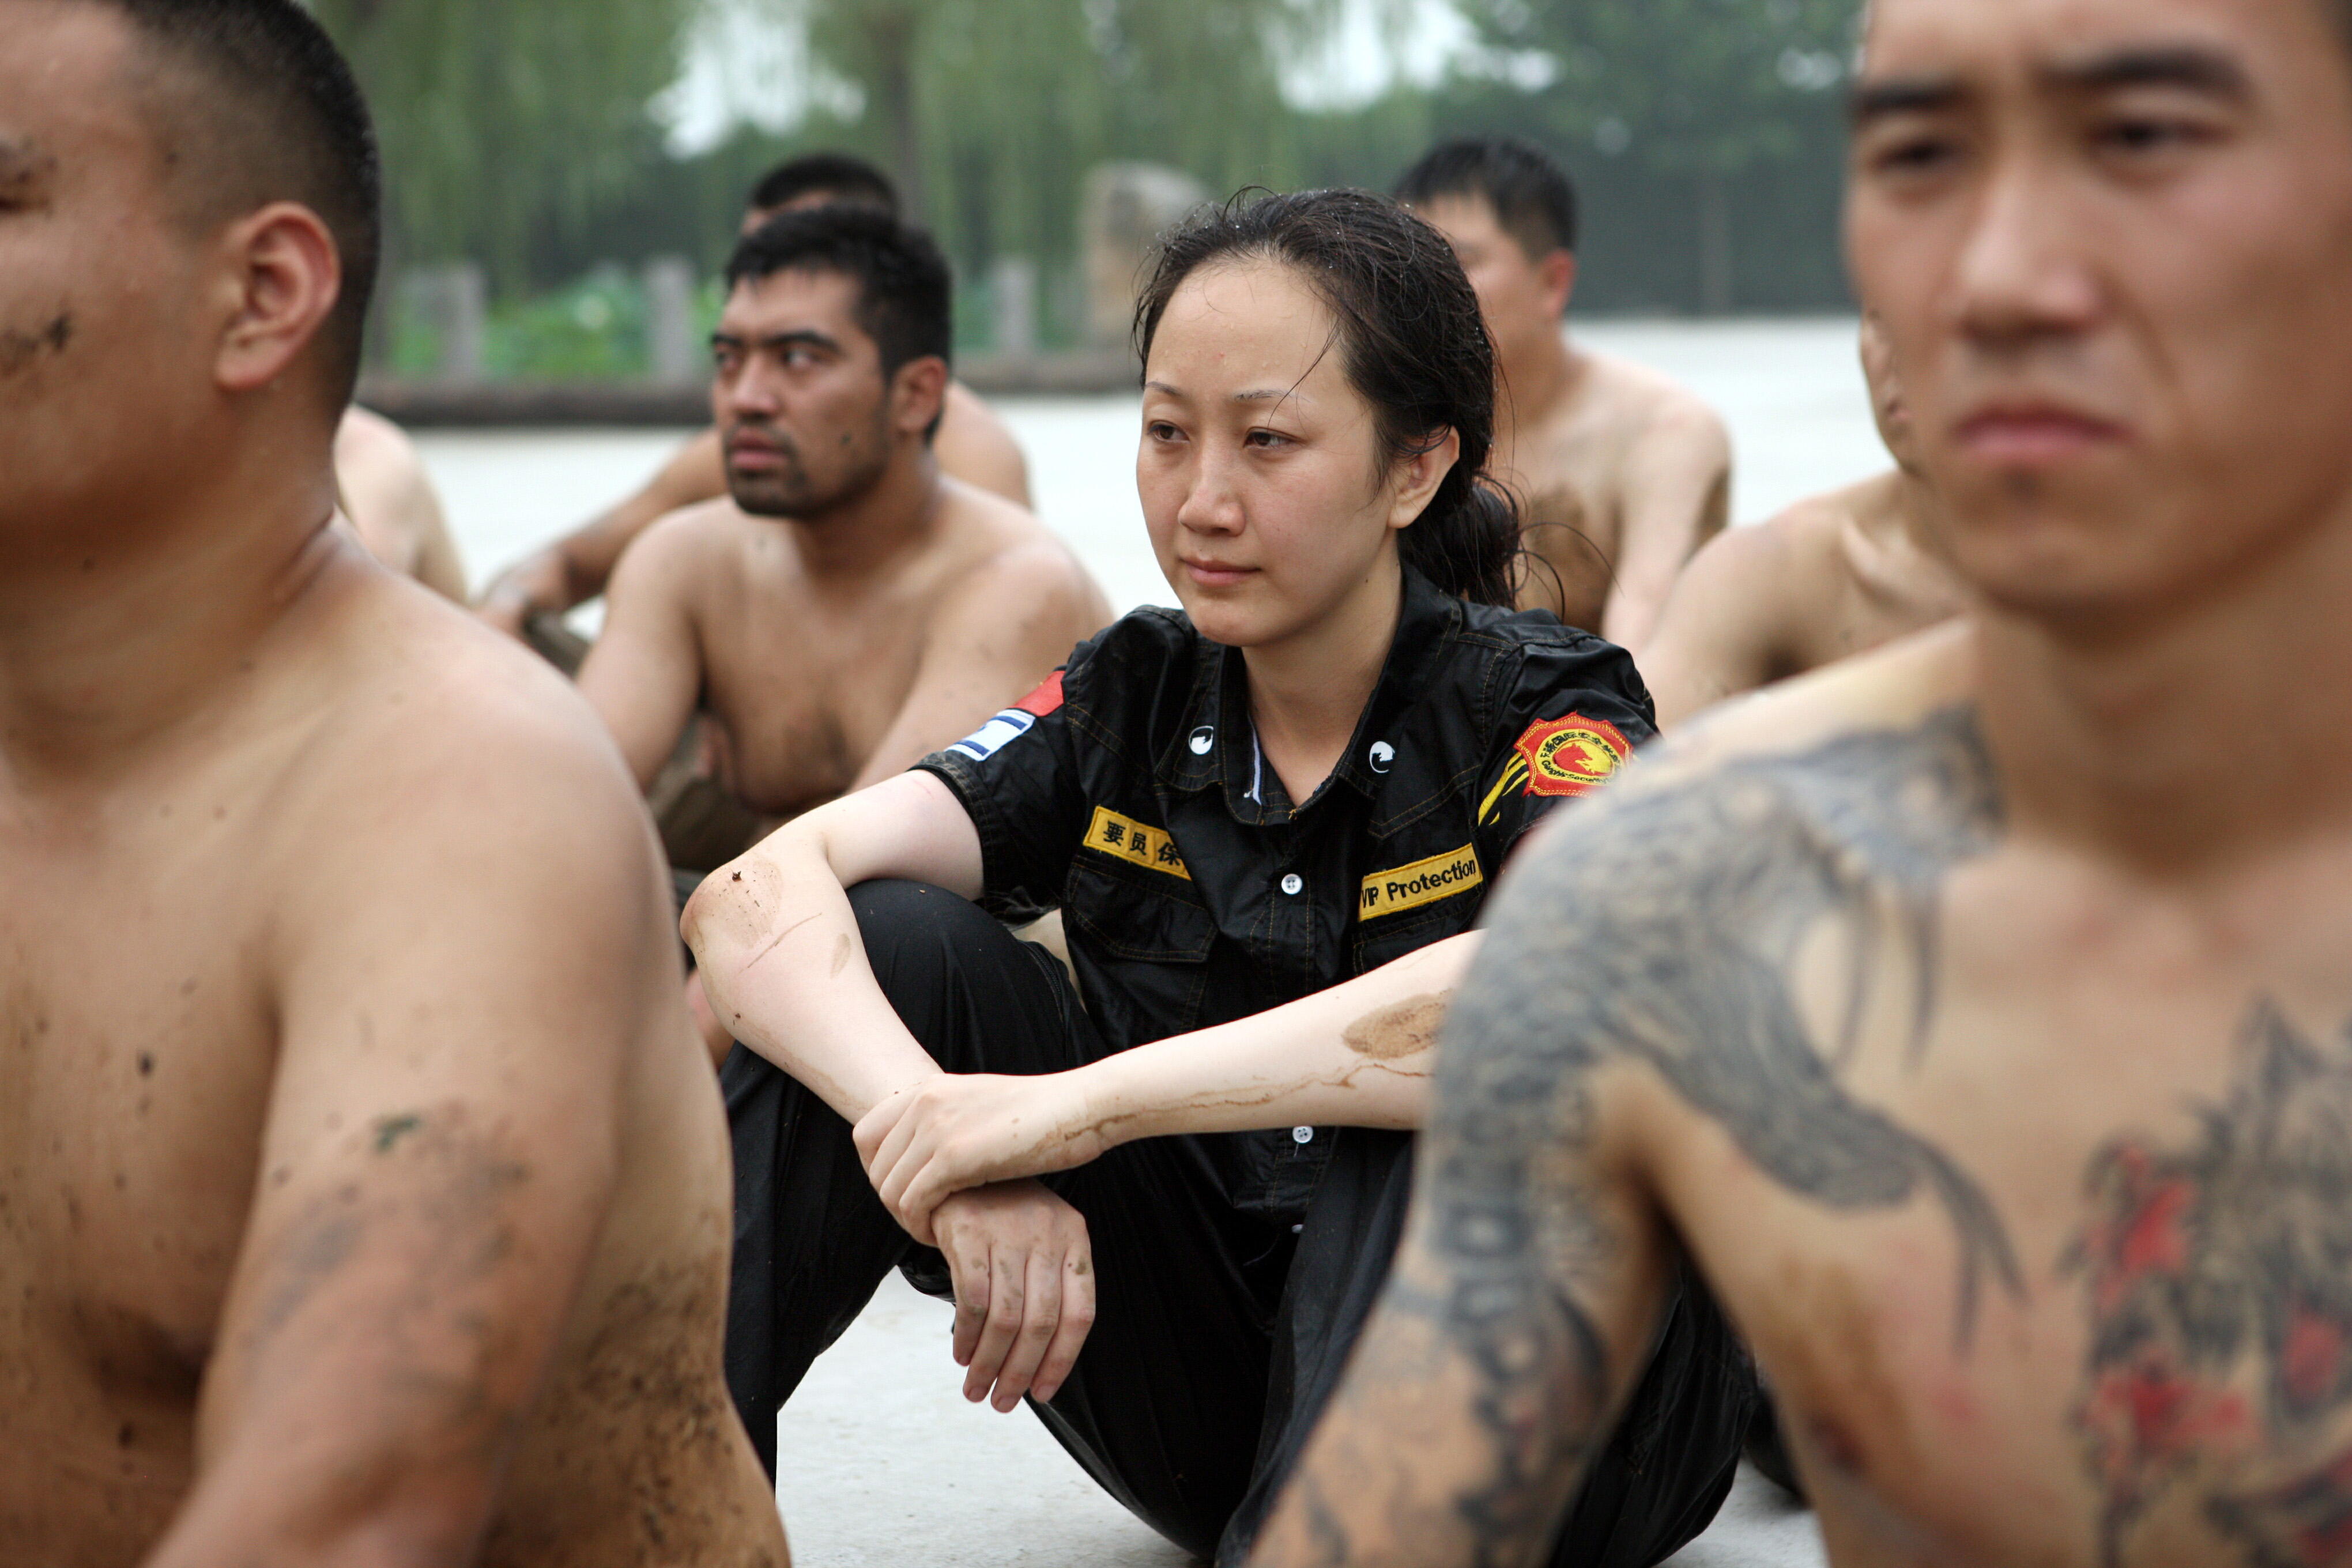 Female and male trainees during a bodyguard-training program at the boot camp of Genghis Security Academy in Beijing on Aug. 21, 2013